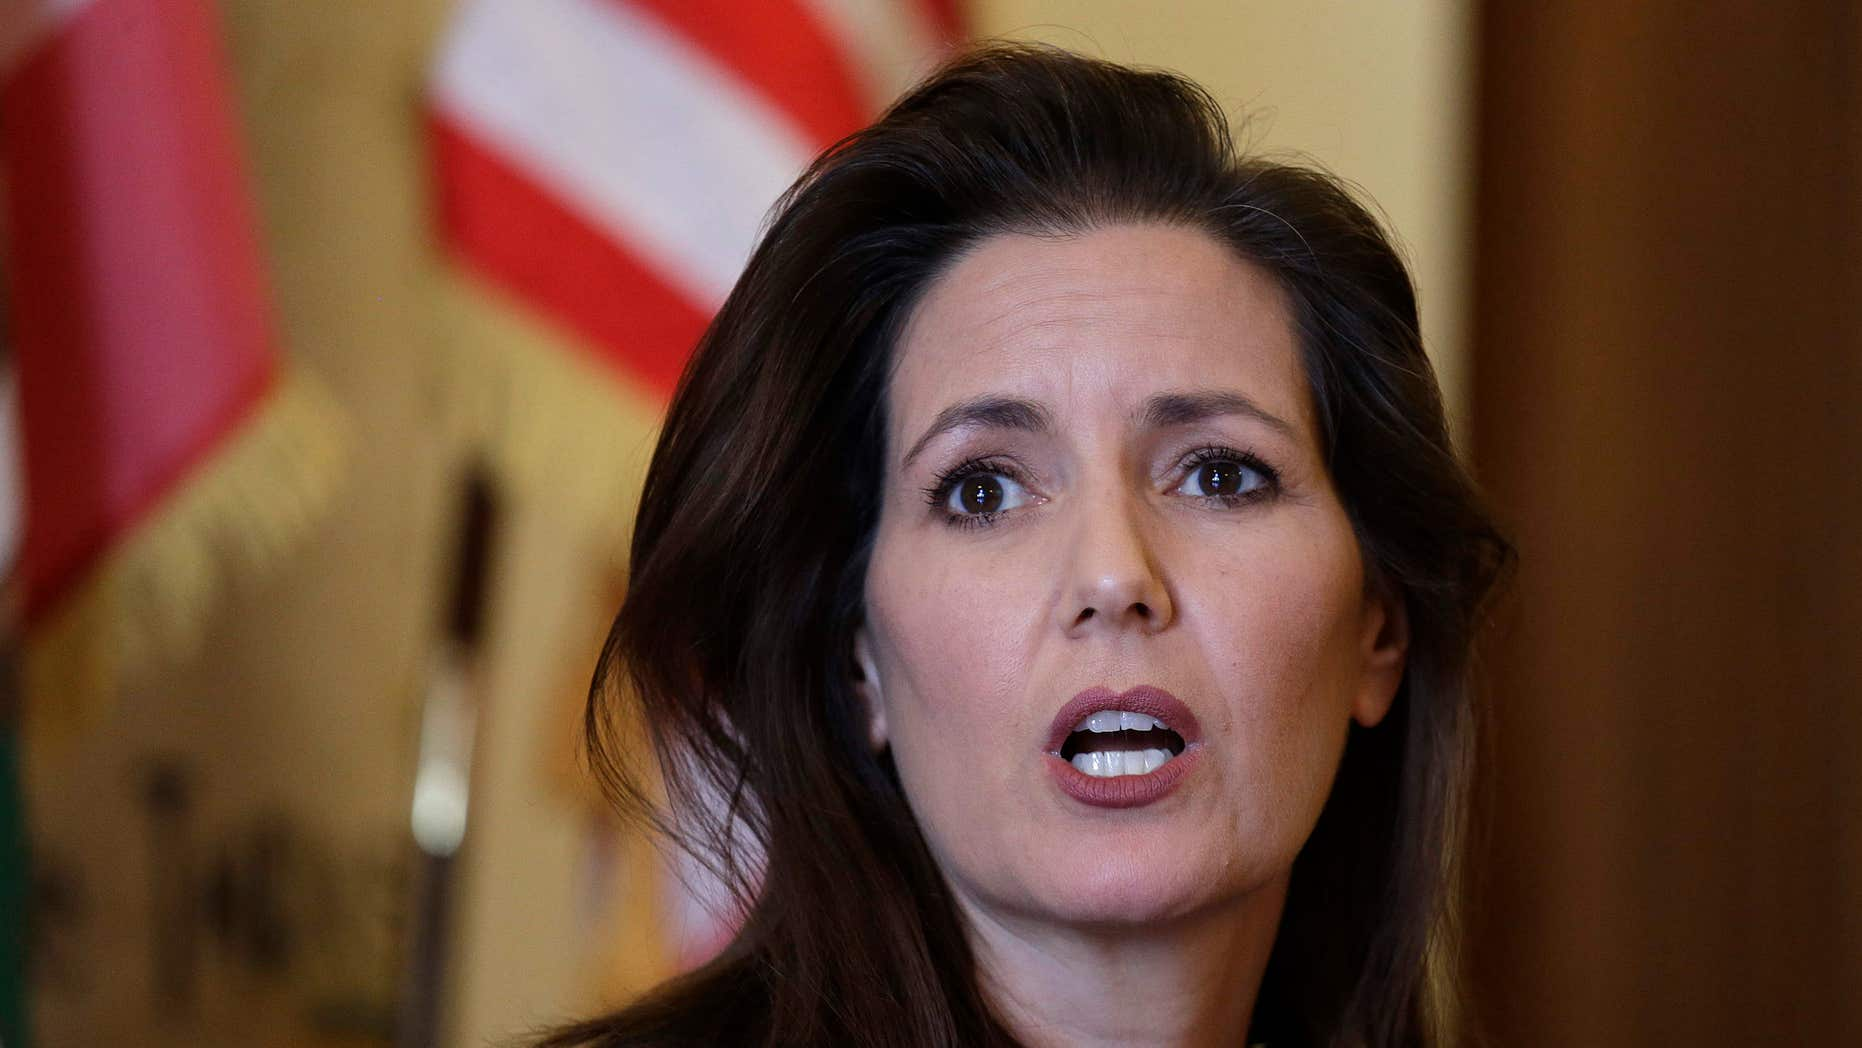 Oakland Mayor Libby Schaaf answers questions during a news conference at City Hall Wednesday, June 15, 2016, in Oakland, Calif.